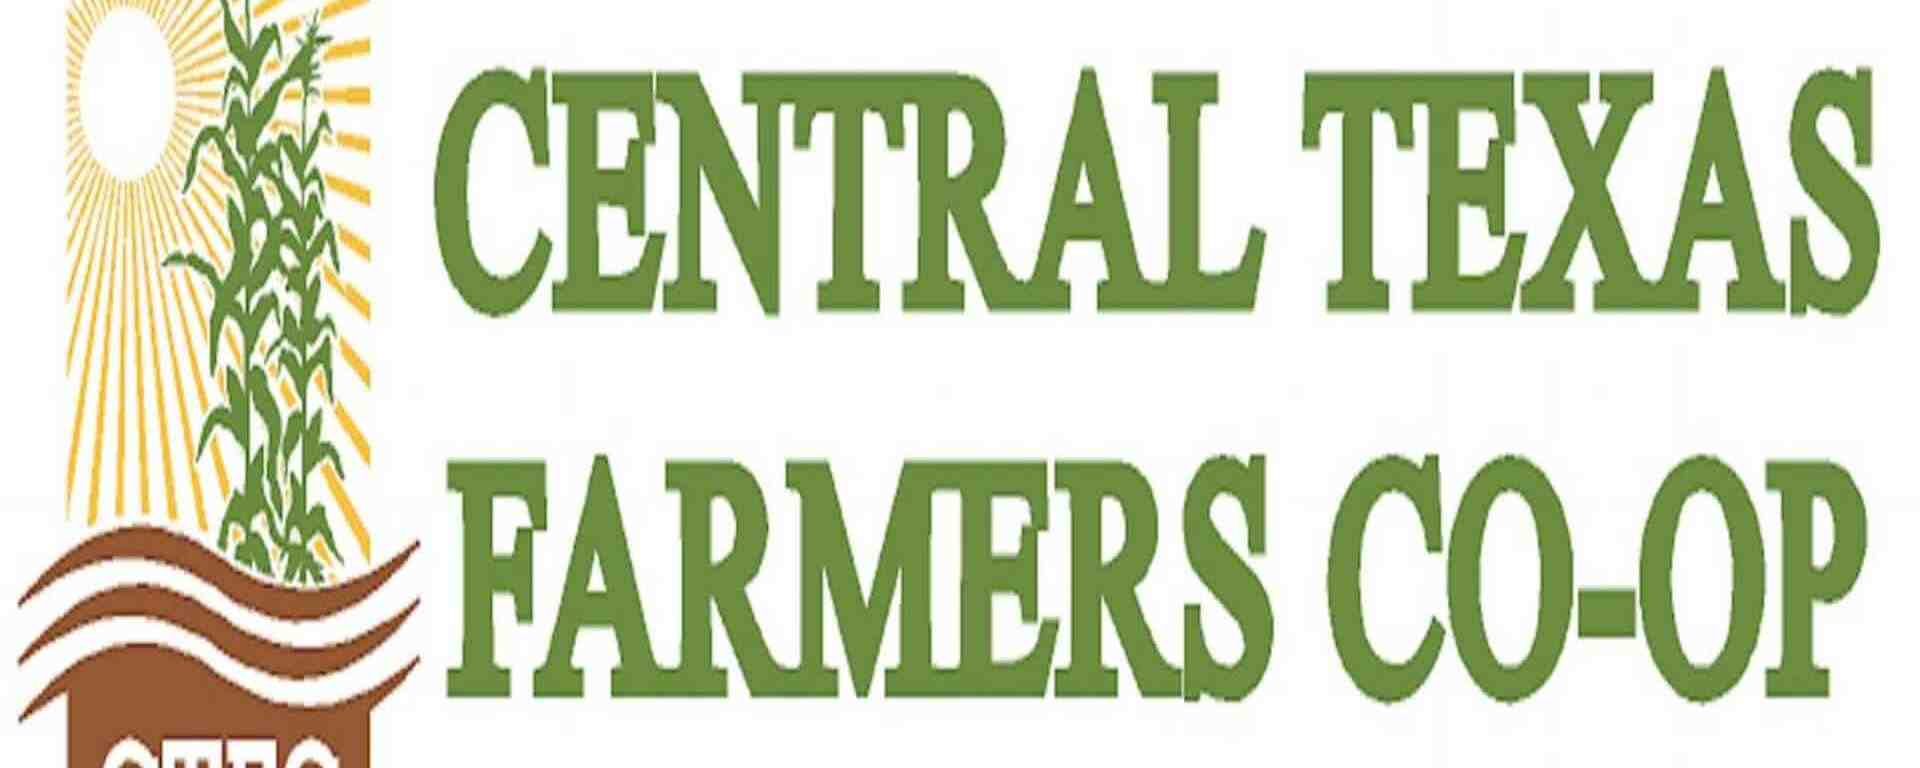 Central Texas Farmers Co-Op logo